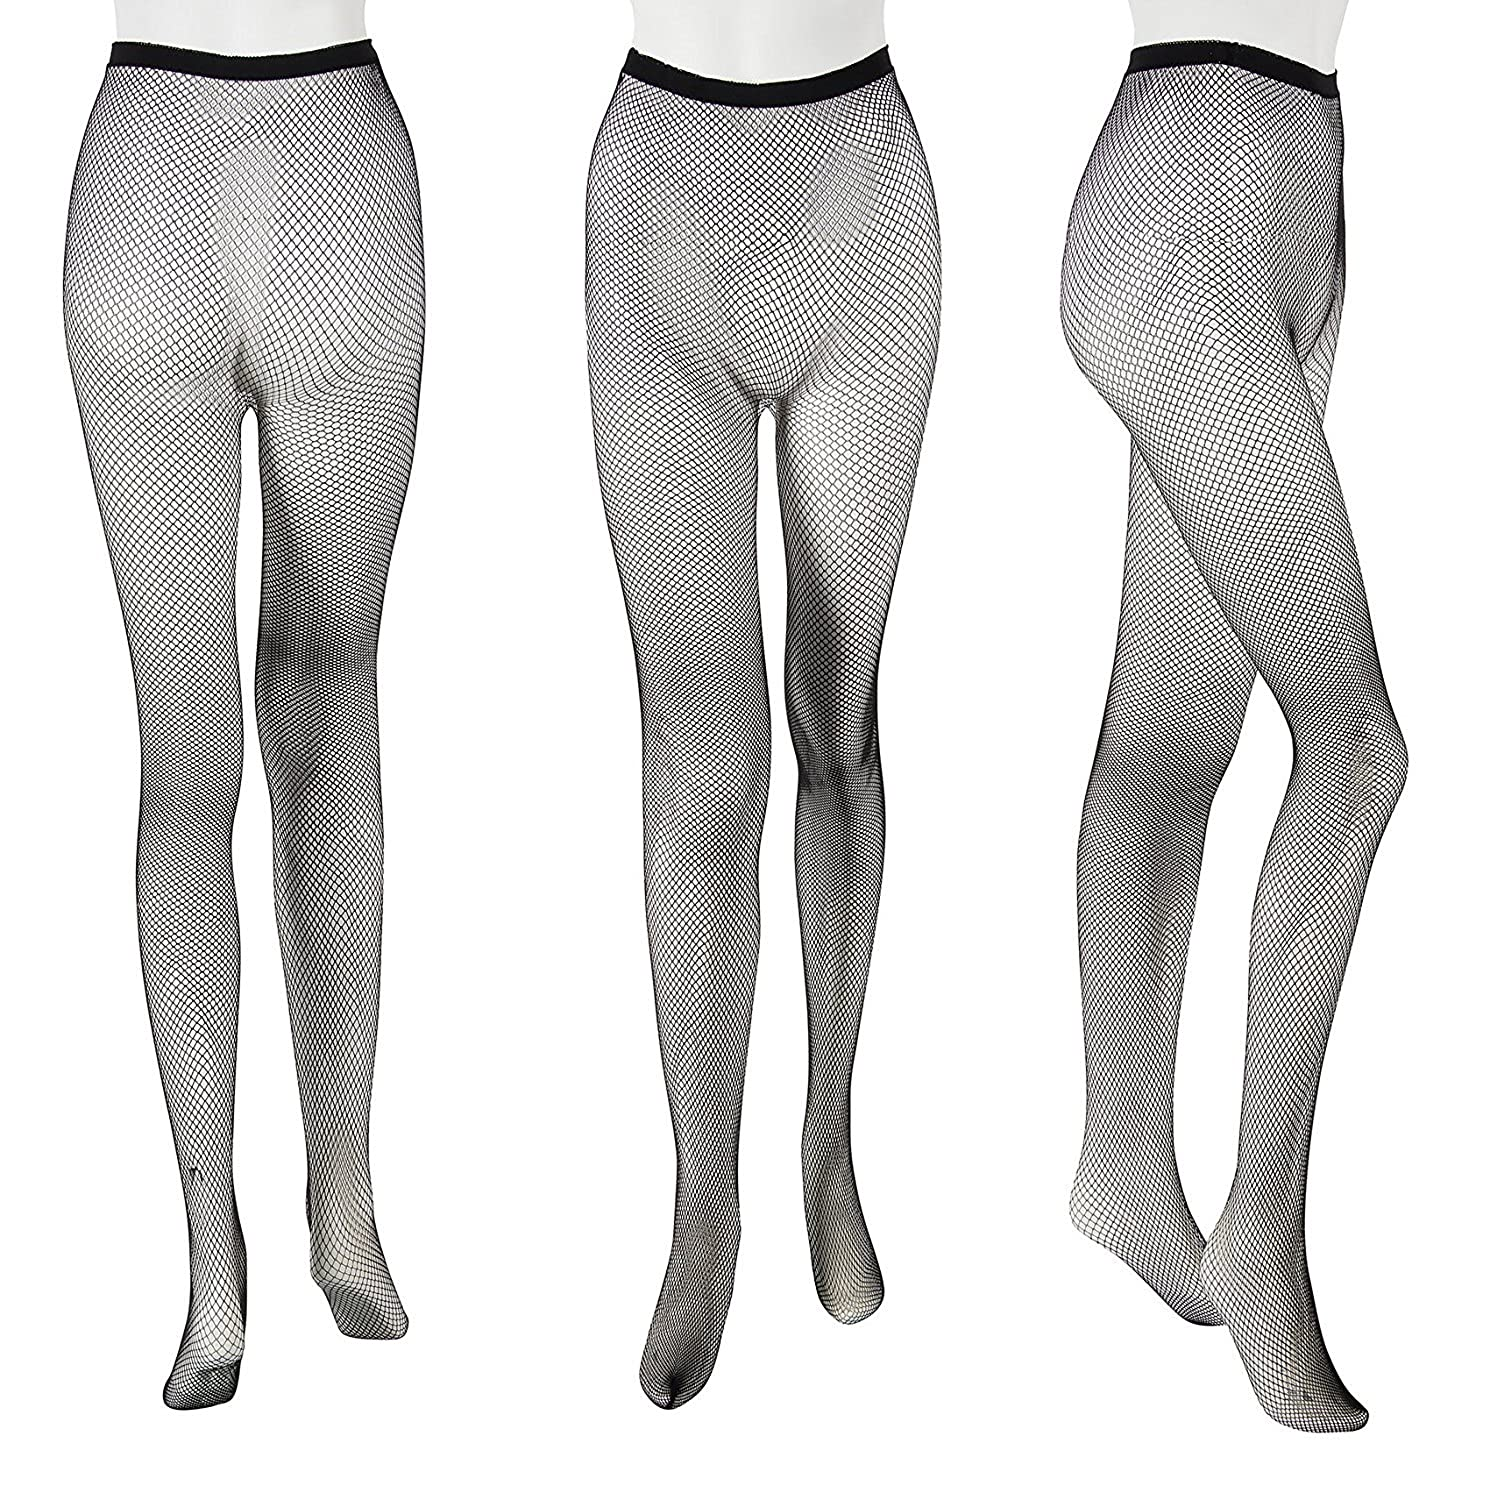 cf8f19088e2fd Amazon.com: Fishnet Tights - 3 Pack 3 Styles Sexy Fishnet Tights, Hollow  Out Fishnet Pantyhose for Women: Clothing